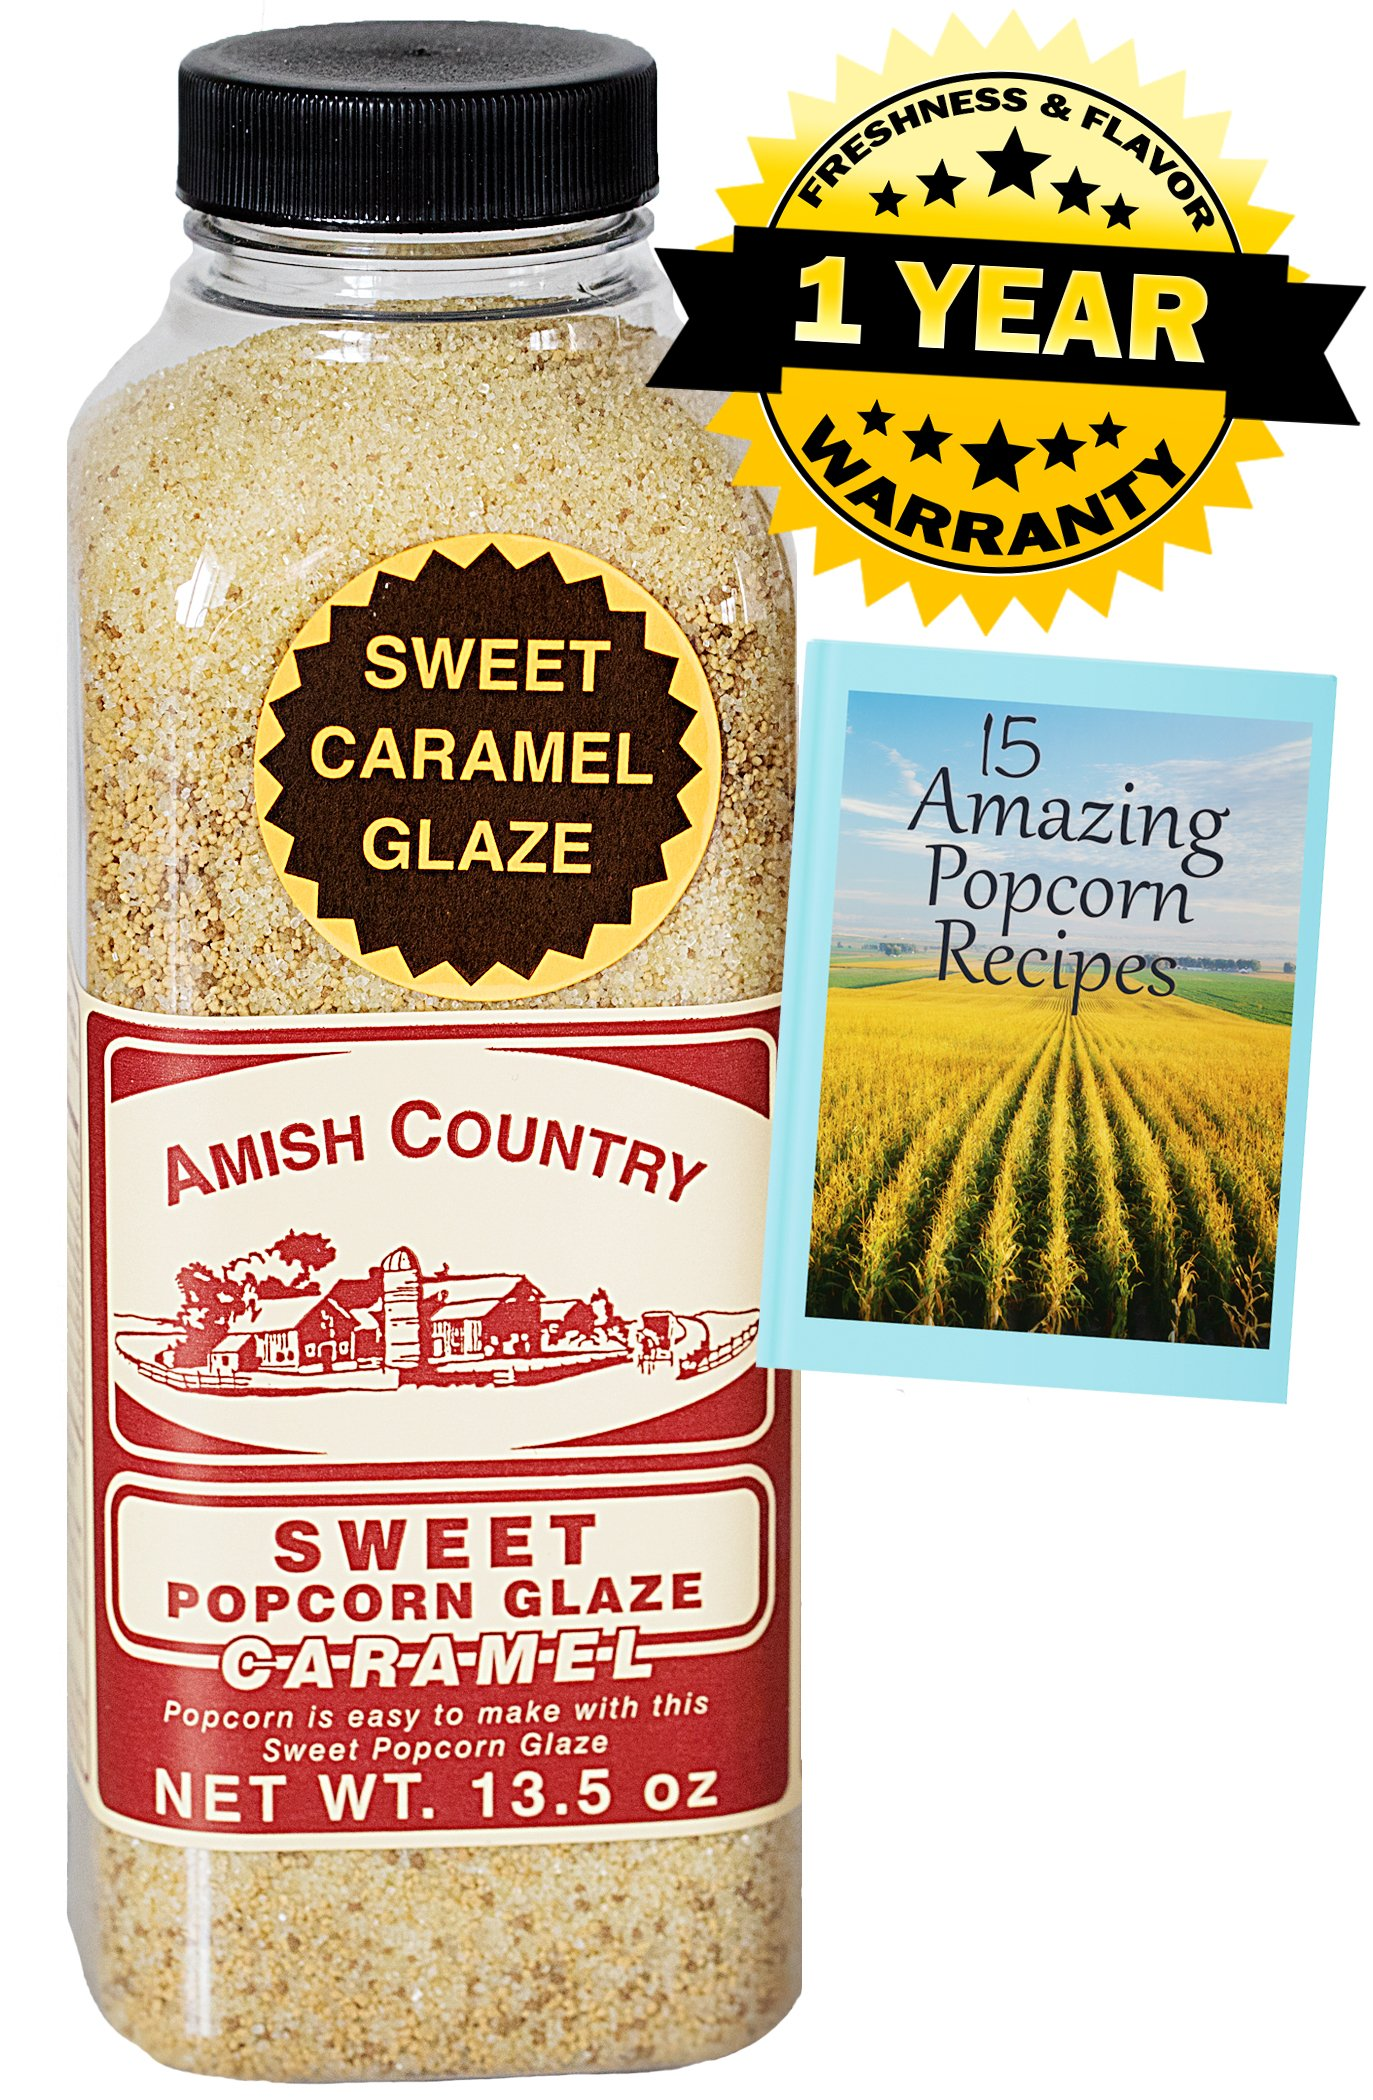 Amish Country Popcorn - Sweet Caramel Glaze - 13.5 oz - Great Tasting and Old Fashioned Sweet Treat - with Recipe Guide and 1 Year Freshness Guarantee by Amish Country Popcorn (Image #1)